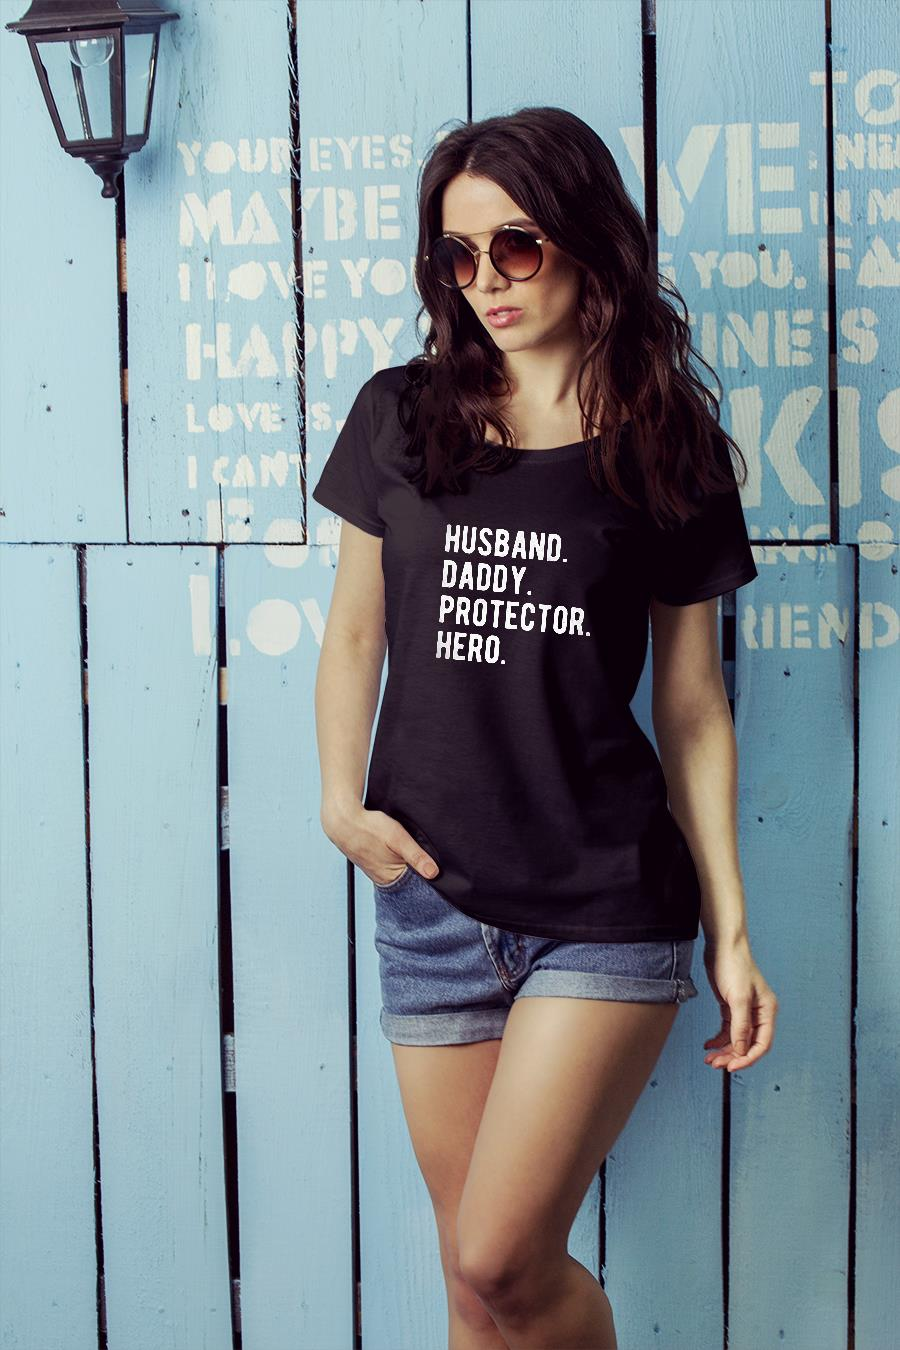 Husband Daddy Protector Hero Classic Shirt ladies tee official